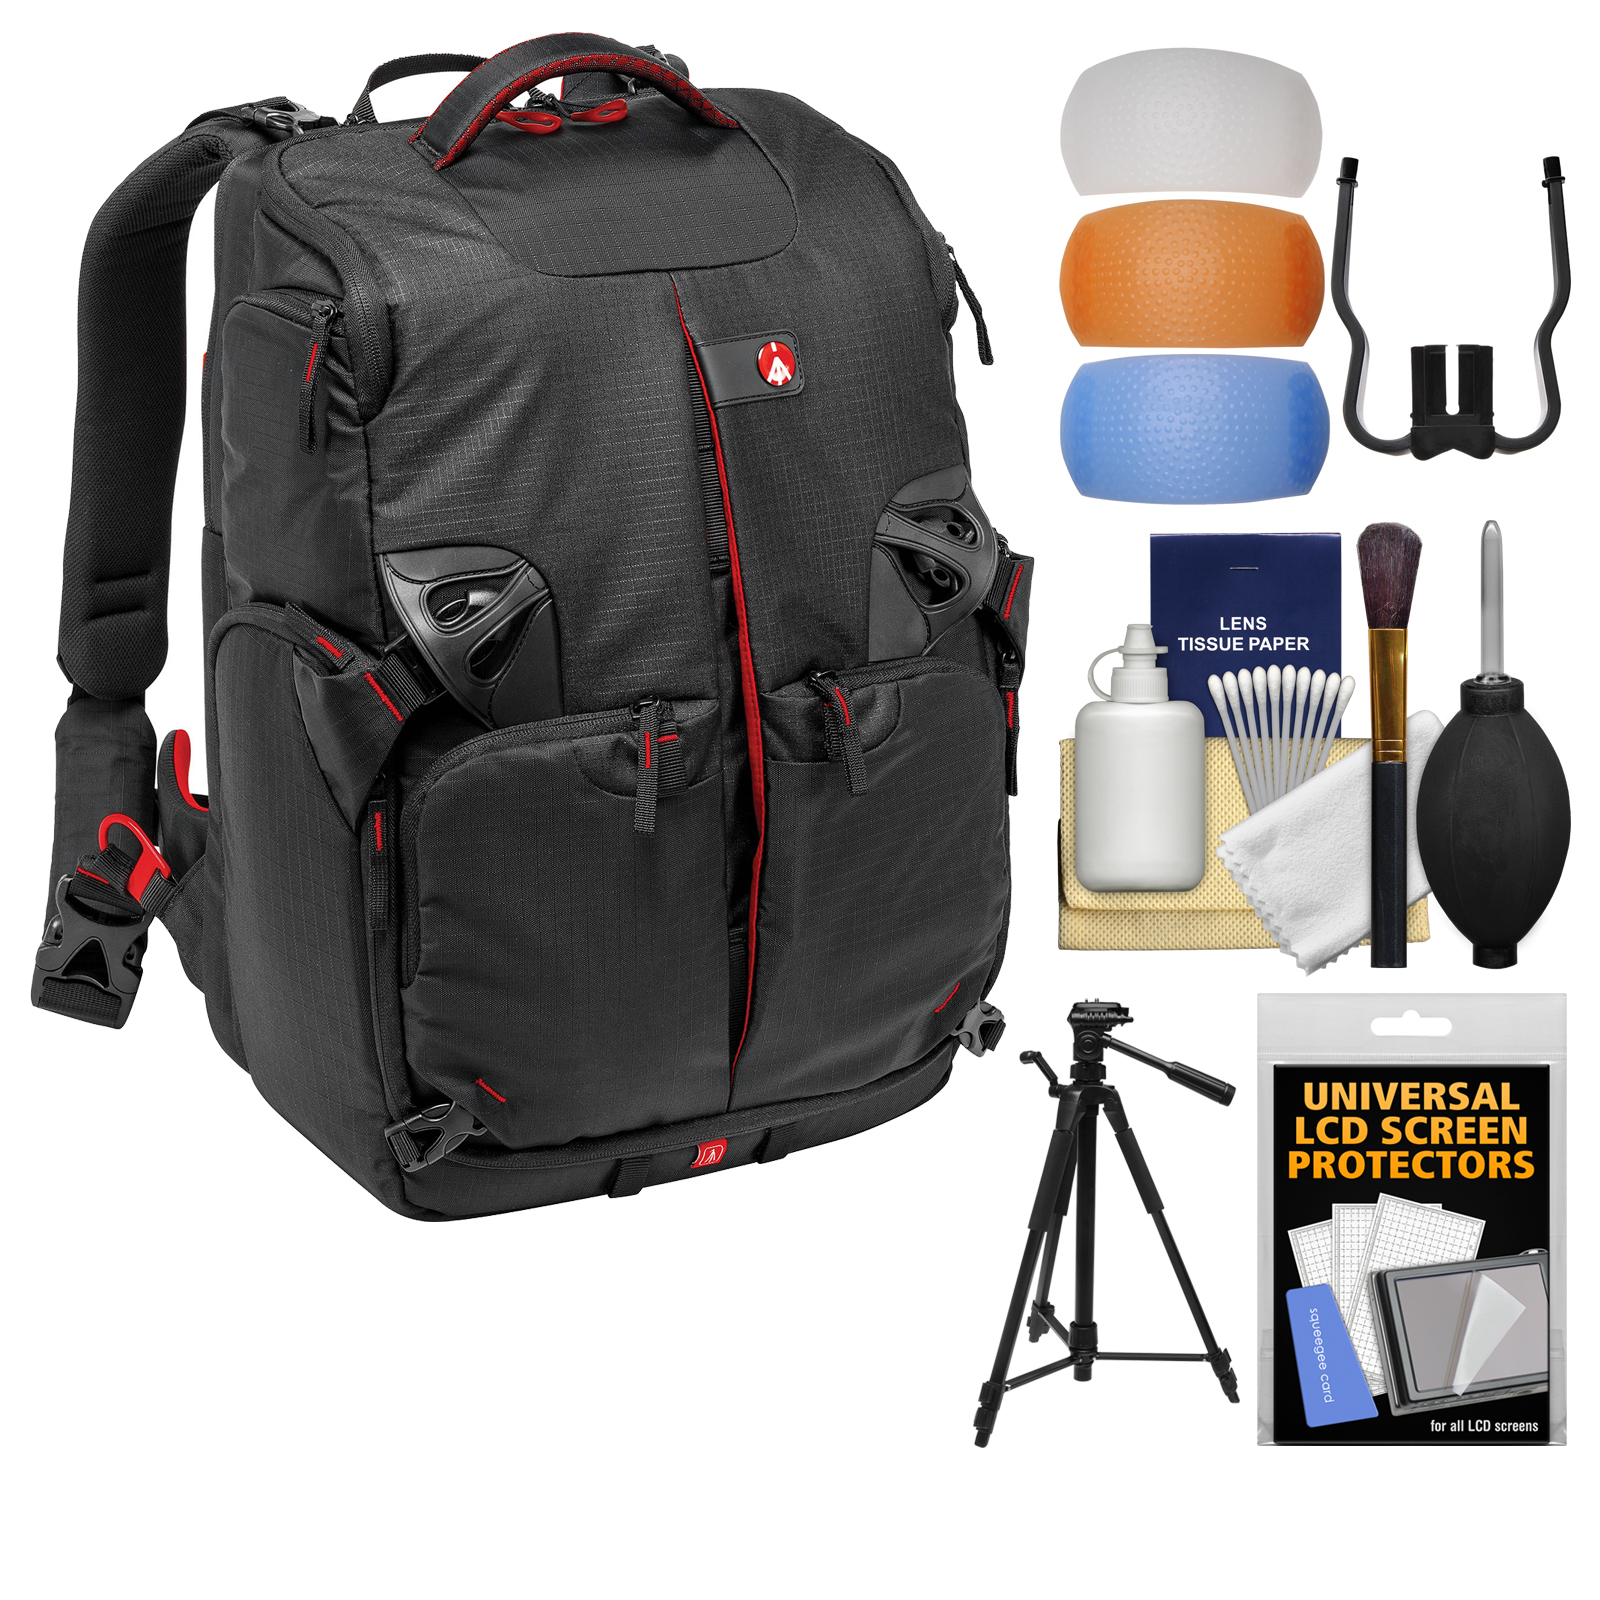 """Manfrotto Pro Light 3N1-35 PL Digital SLR Camera Sling Backpack with 58"""" Tripod + DSLR Diffusers & Cleaning Kit"""